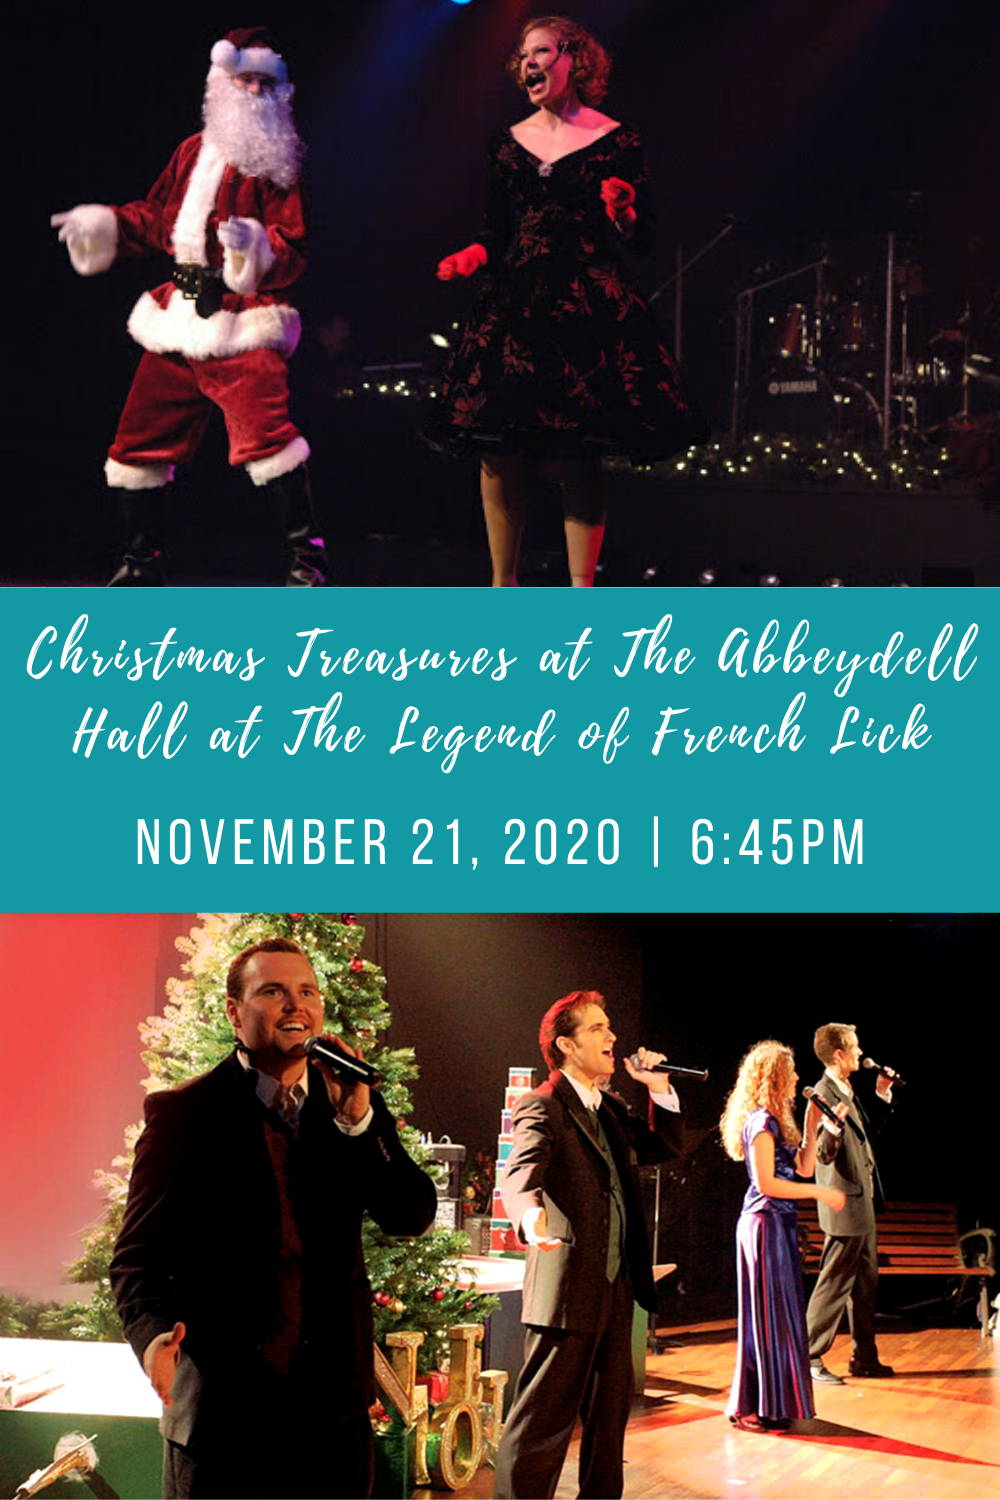 French Lick Christmas 2020 Christmas Treasures at The Abbeydell Hall at The Legend of French